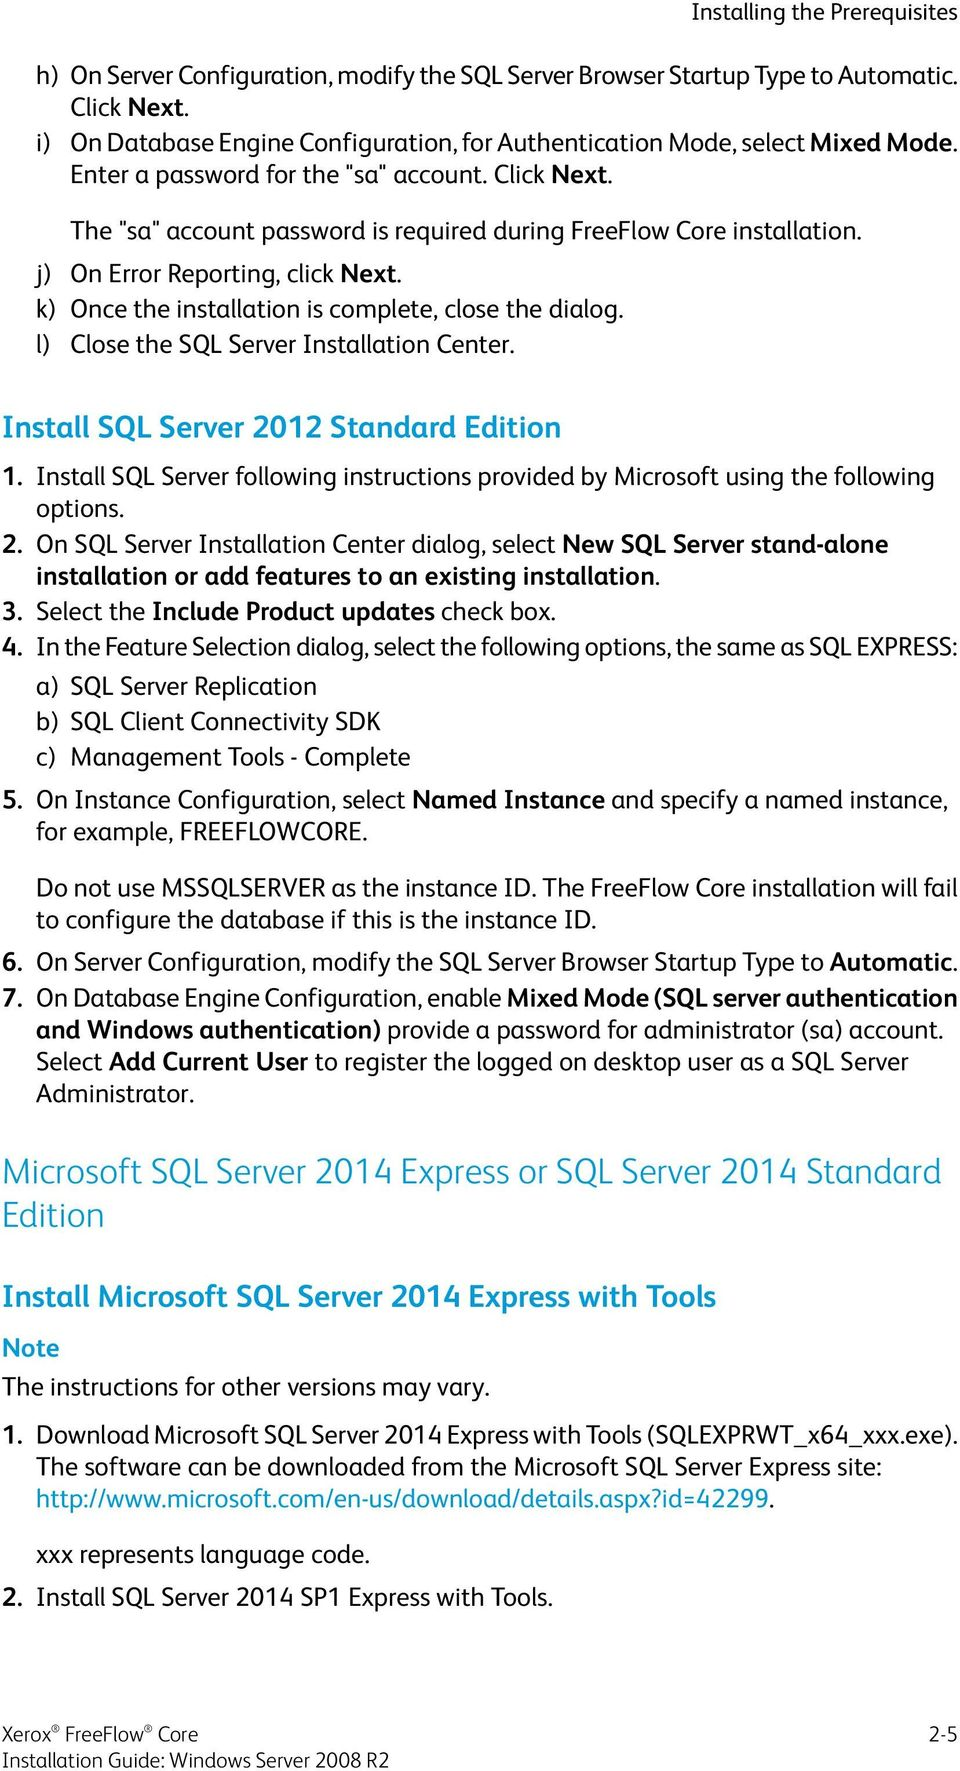 k) Once the installation is complete, close the dialog. l) Close the SQL Server Installation Center. Installing the Prerequisites Install SQL Server 2012 Standard Edition 1.